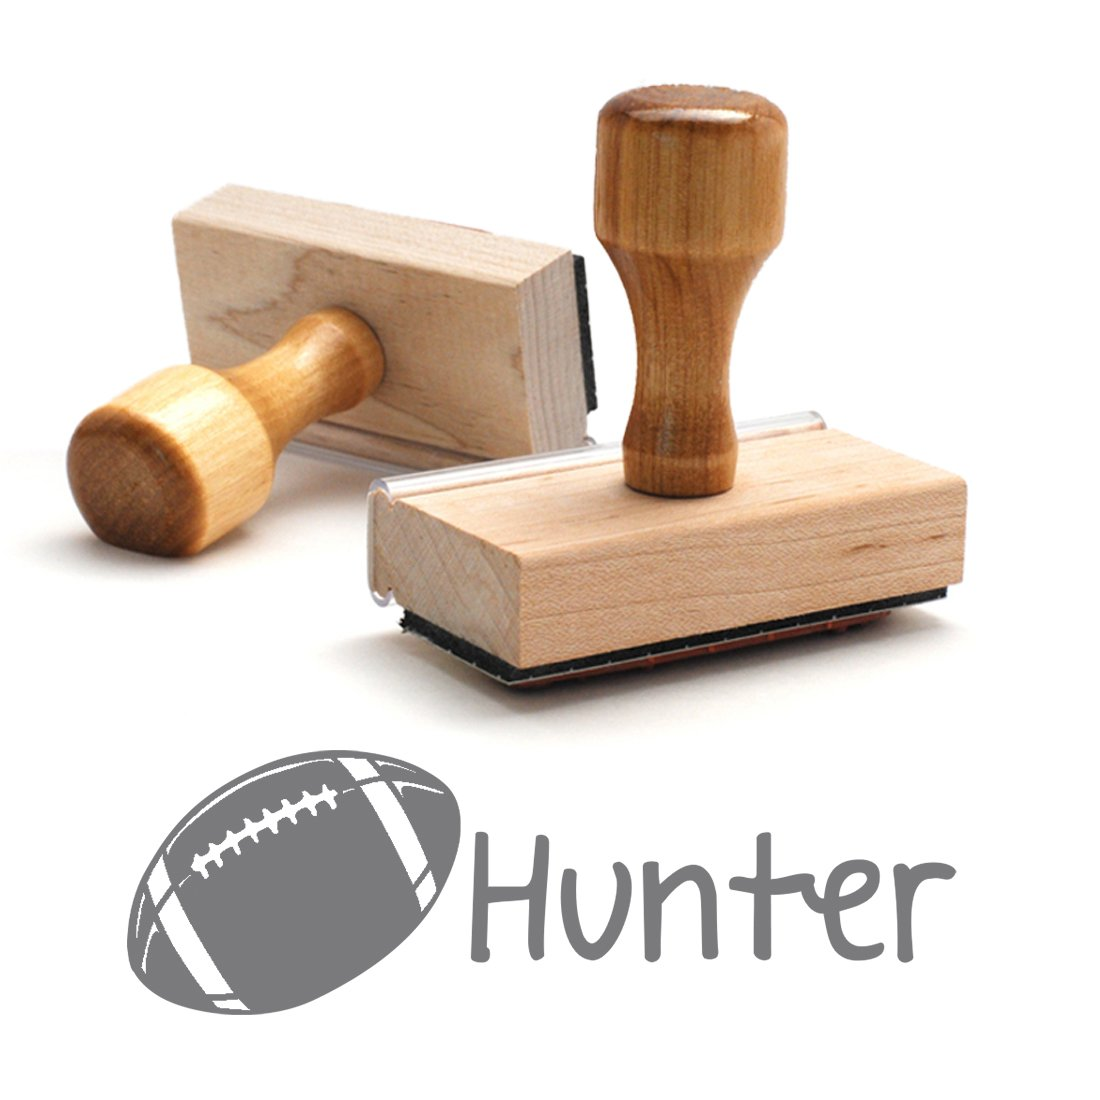 Personalized Kids Name Wood Stamp, Football Stamp, Custom Stylish Font, Customized Name, Rubber Stamp, Naming Stamp, Children Signature Stamper, School Book Label Child Name Rugby Ball (Wooden)